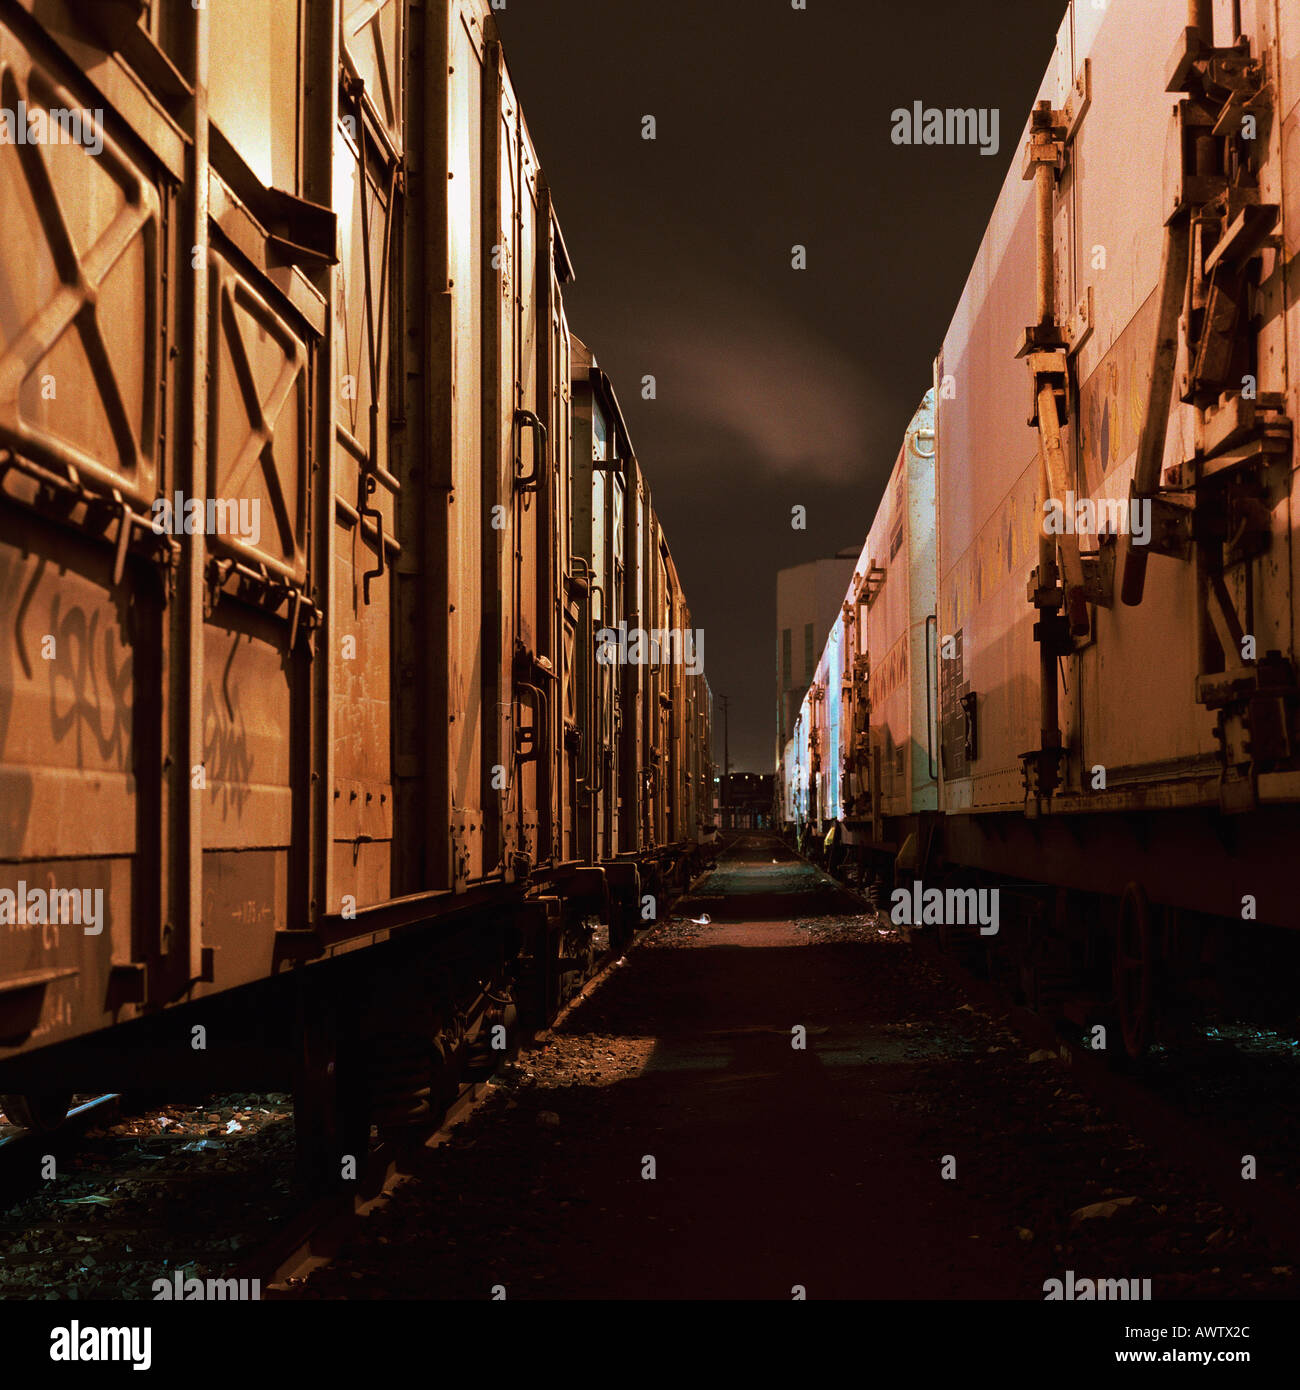 Freight trains at night, close-up - Stock Image